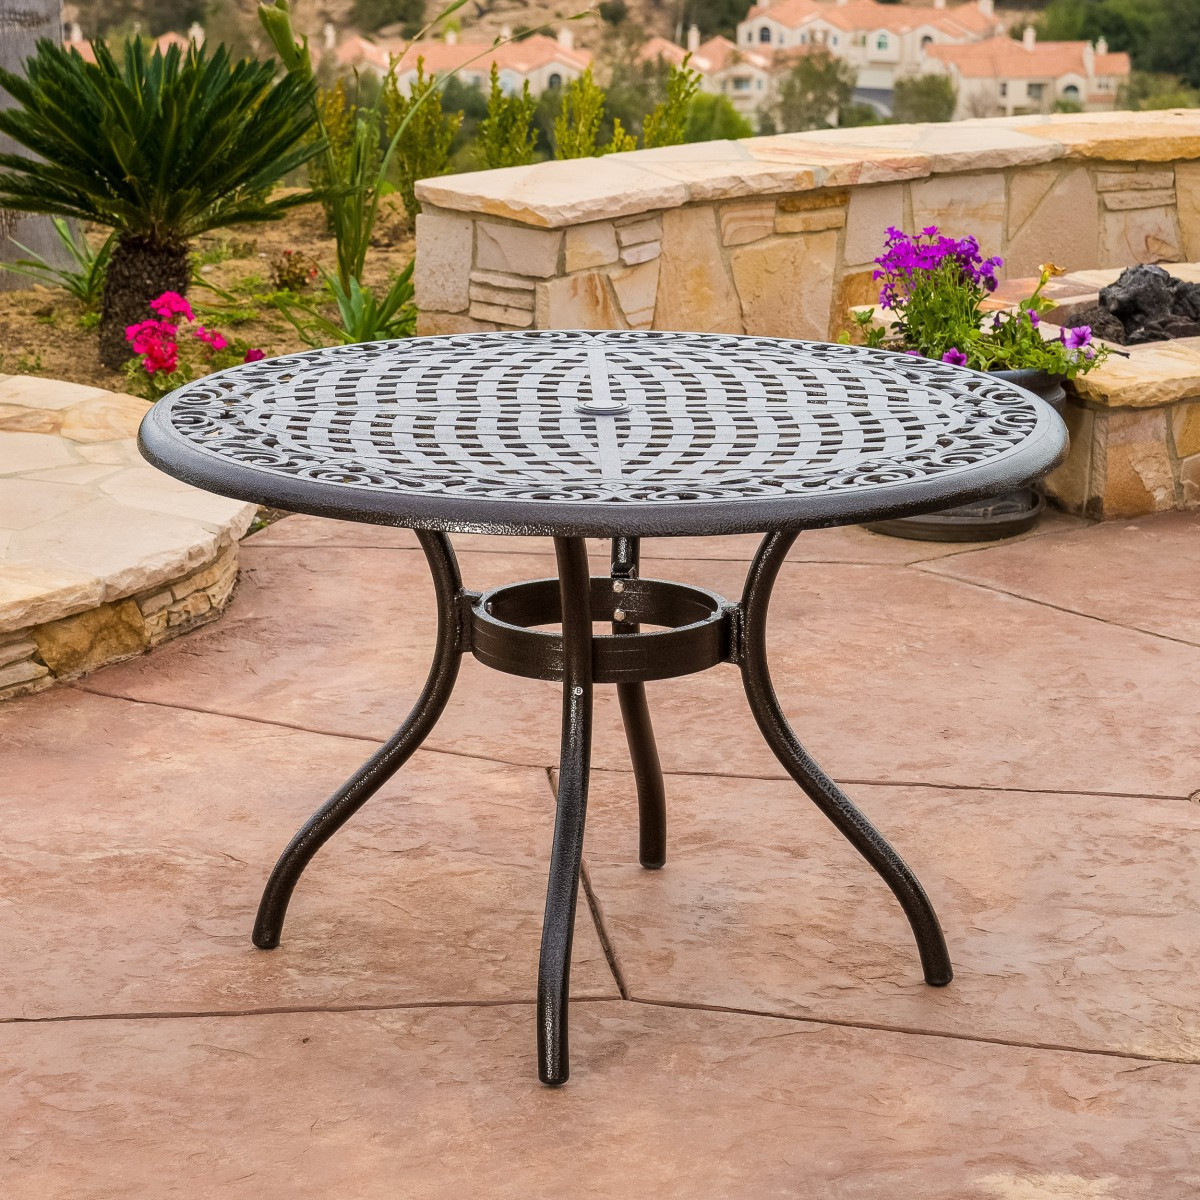 Best ideas about Round Patio Dining Table . Save or Pin Covington Cast Aluminum 5 Piece Outdoor Dining Set with Now.